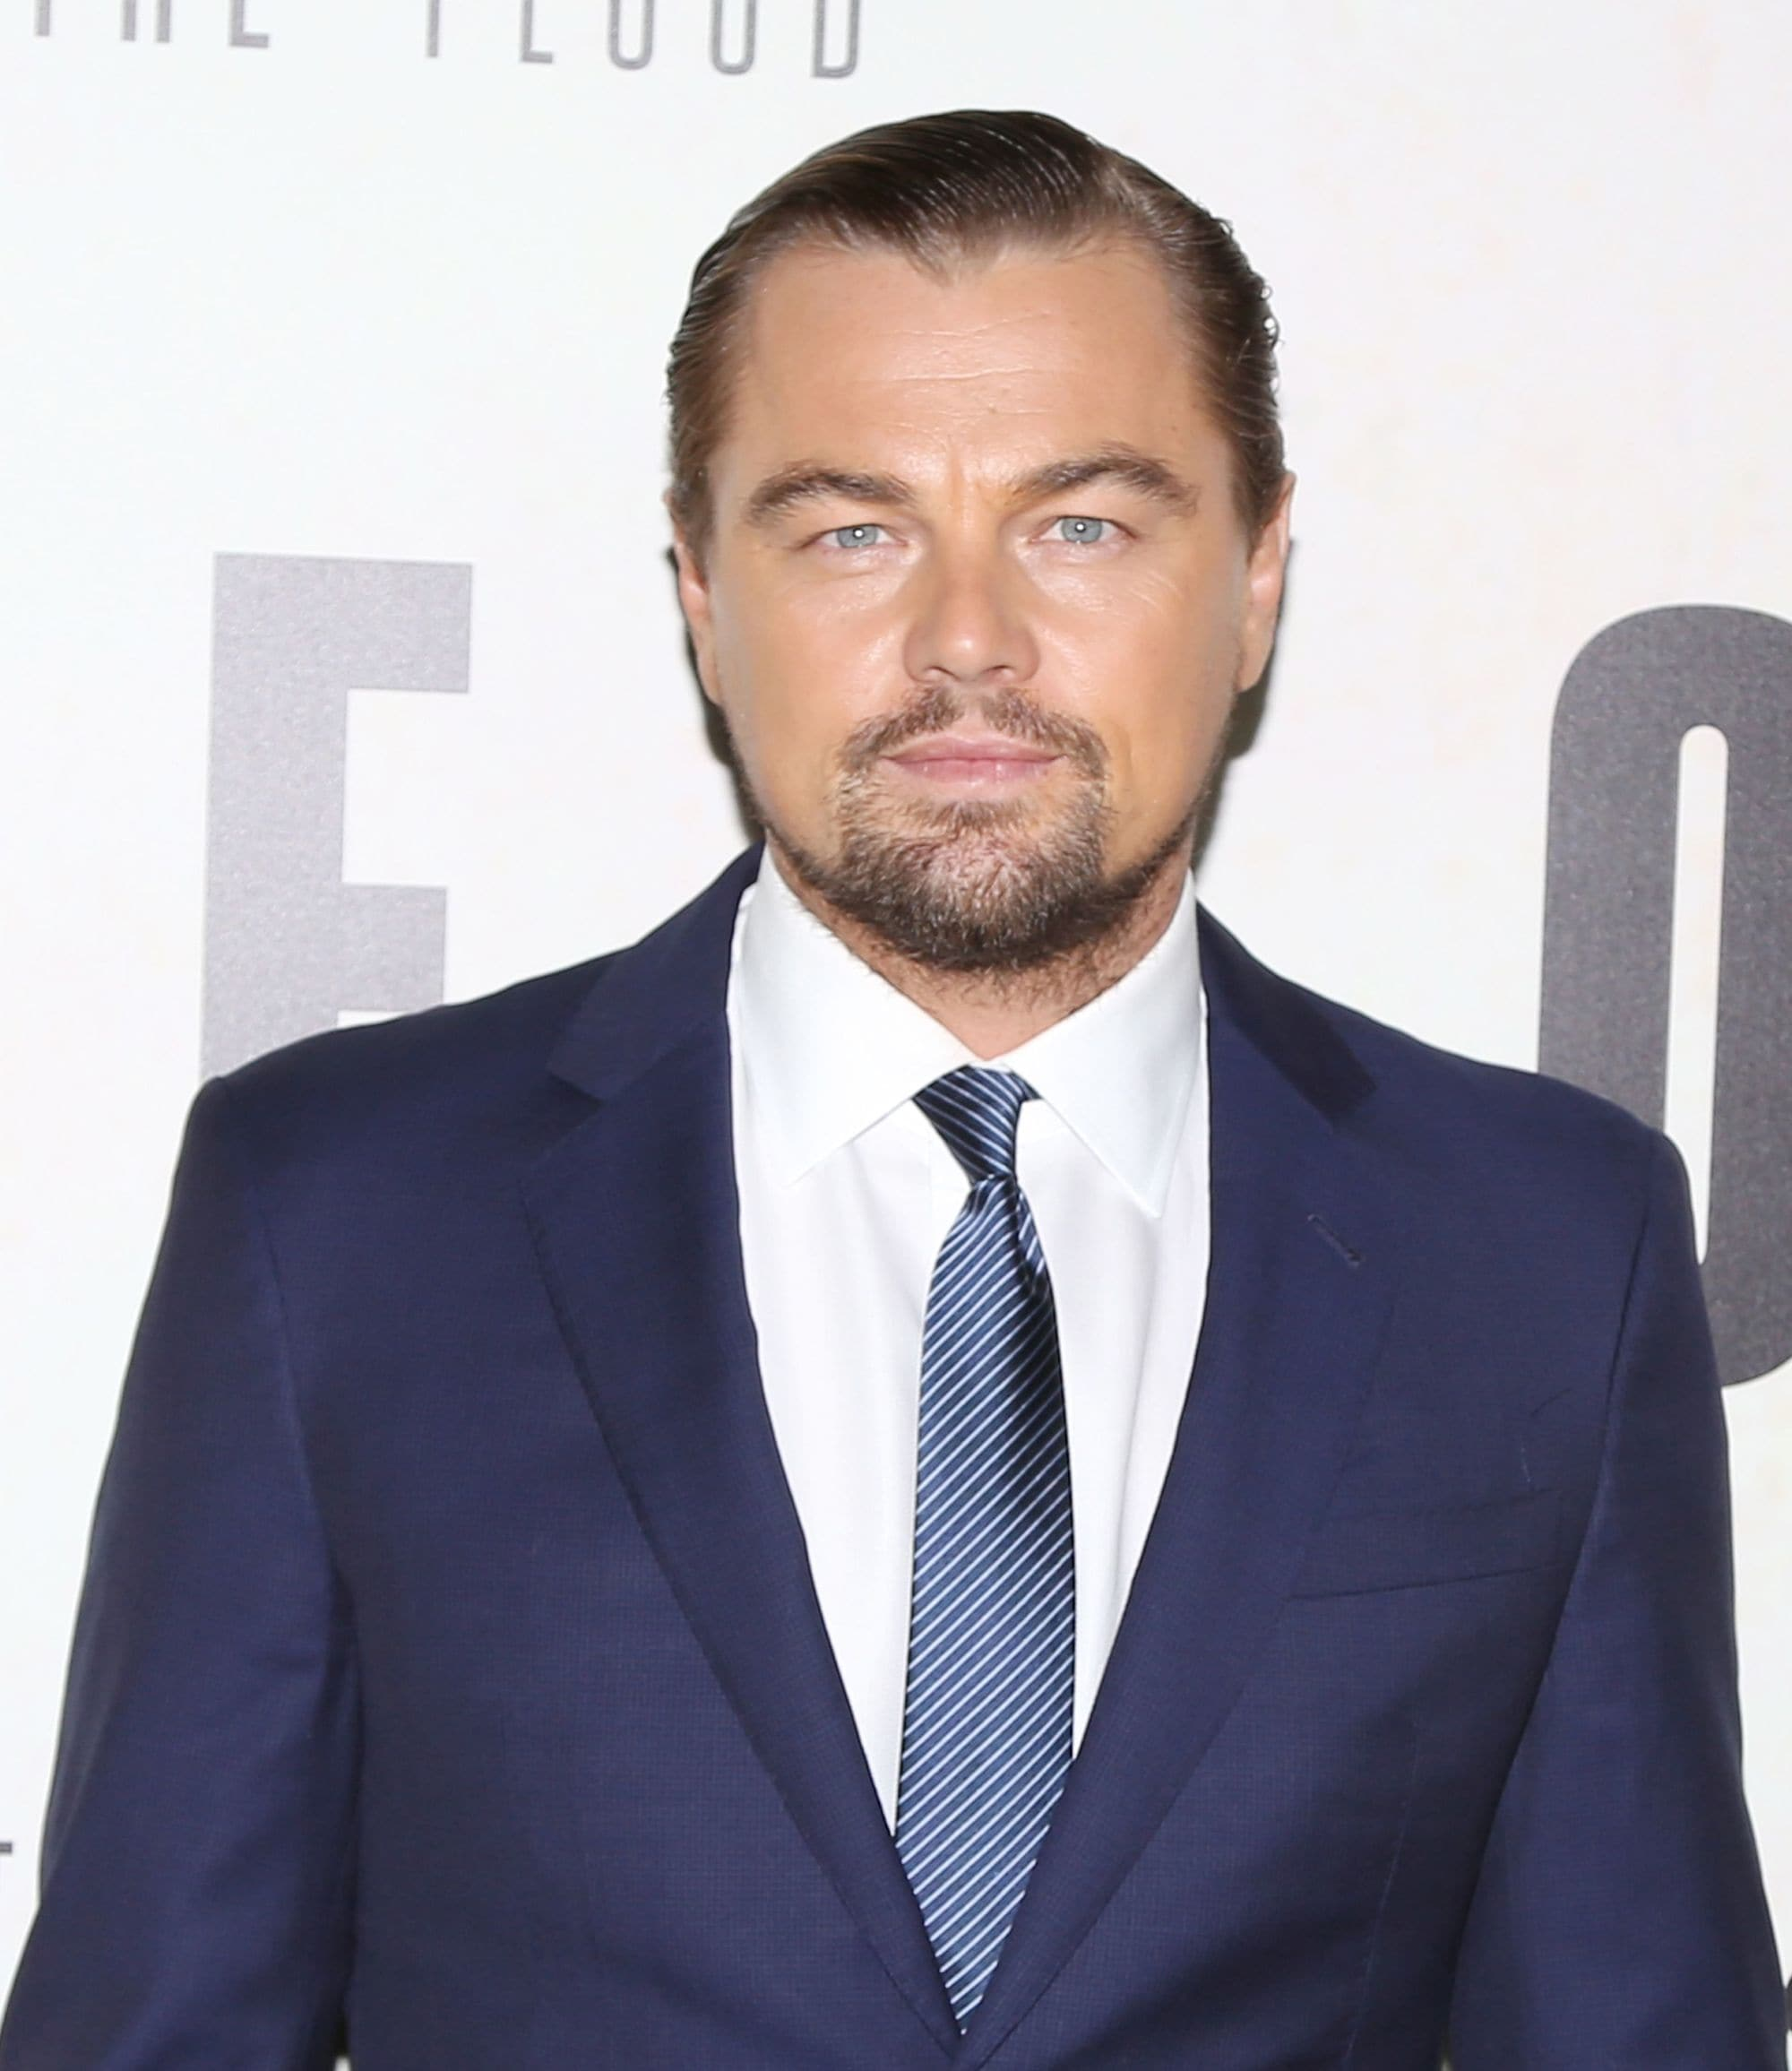 Leonardo DiCaprio wet look slicked back hair